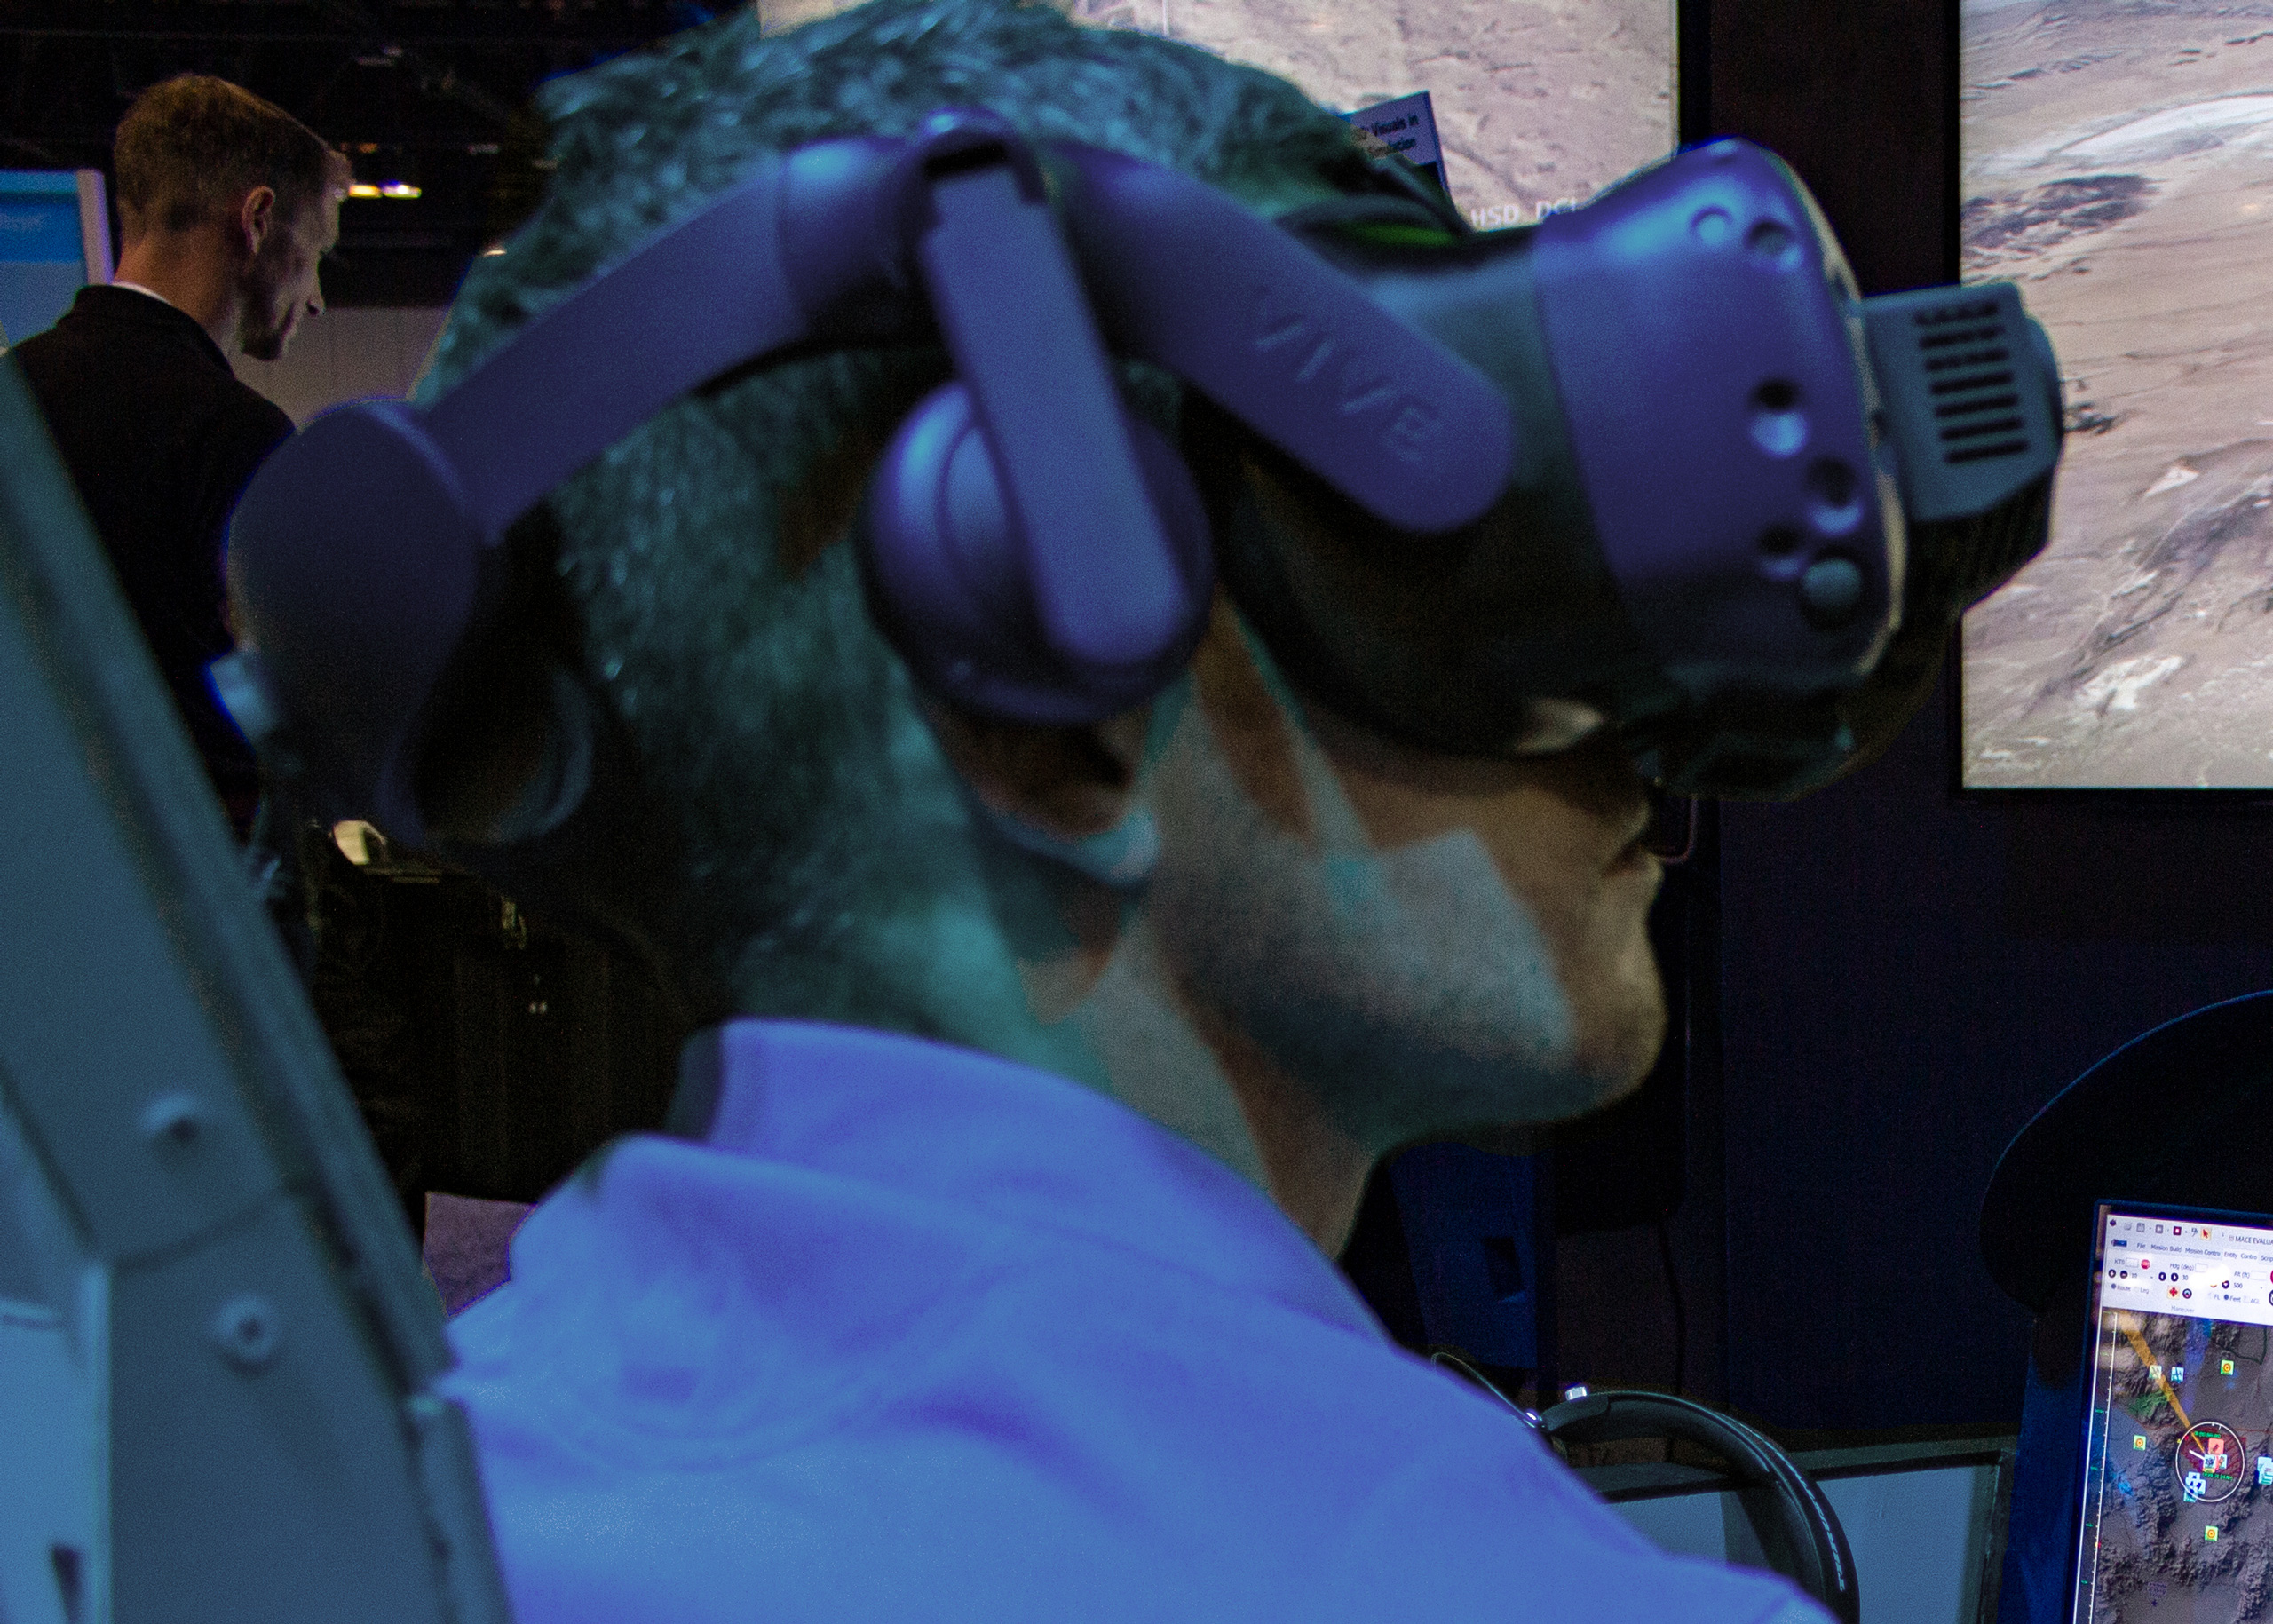 MetaVR's F/A-18 PTMT - The pilot wears the HTC Vive Pro VR system running VRSG, augmented with Collins Aerospace's Coalescence mixed-reality training system.